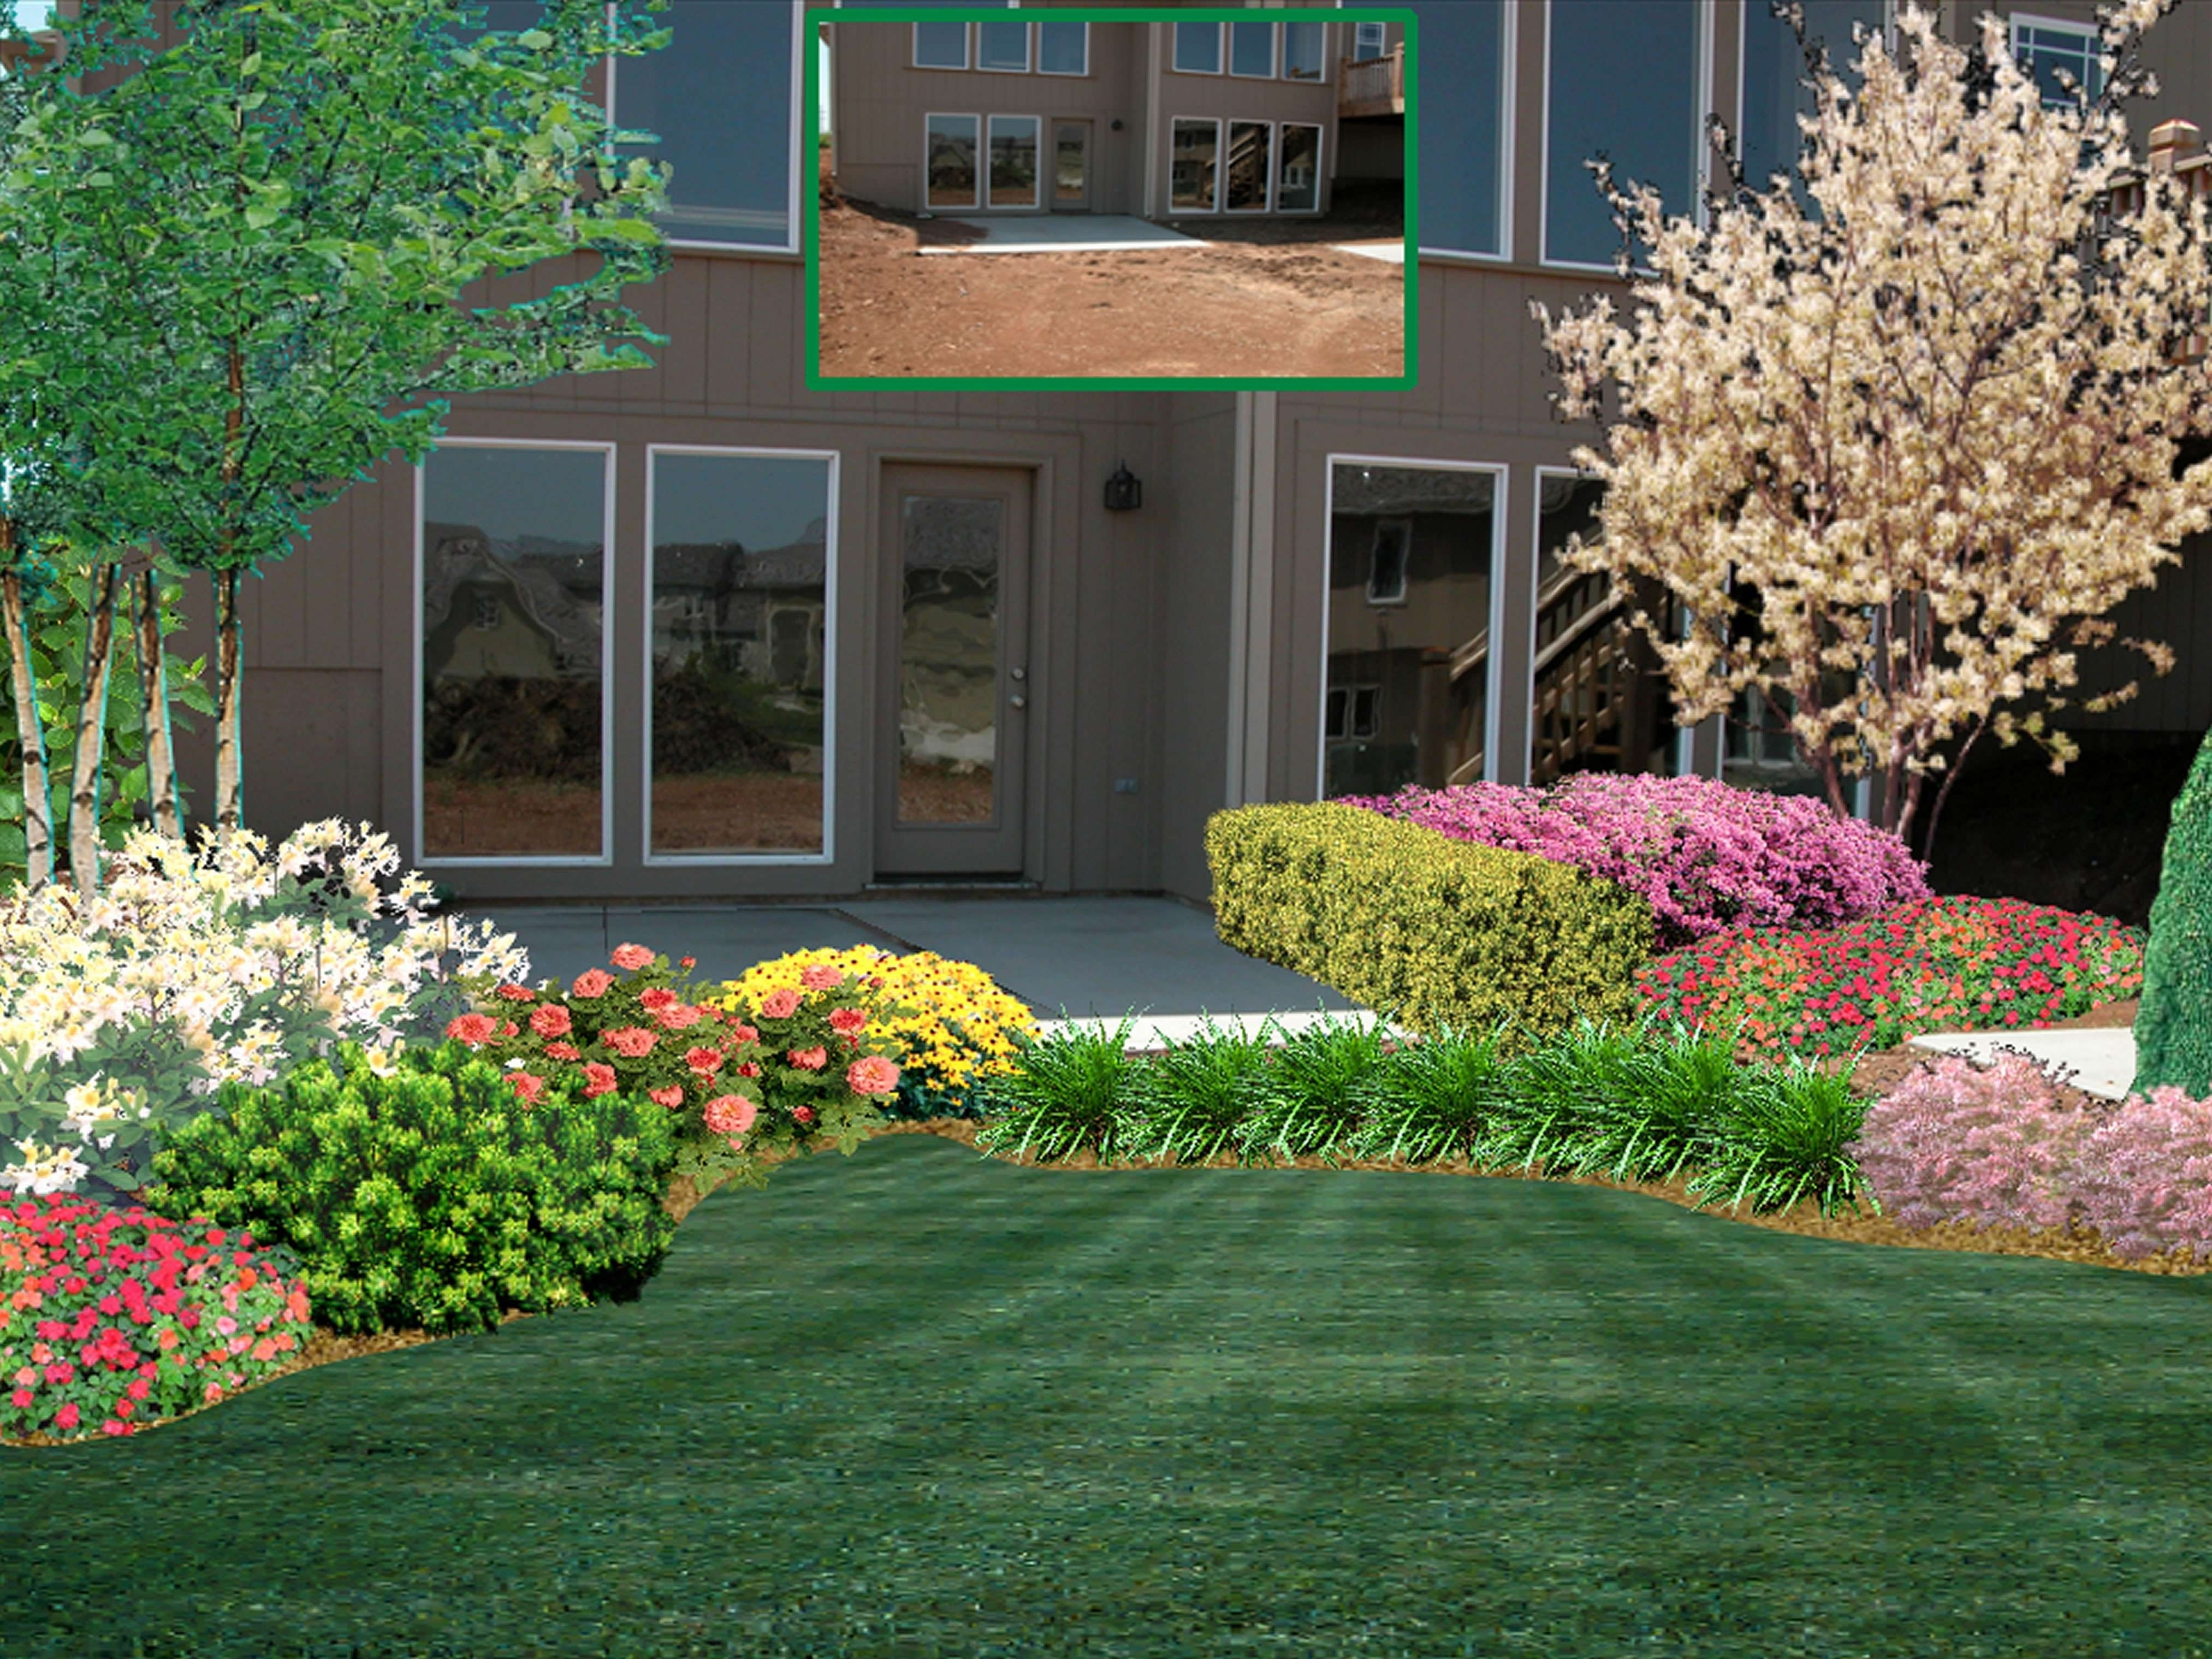 22 Better Homes And Garden Plans | Nuithonie for Better Homes And Garden House Design Software